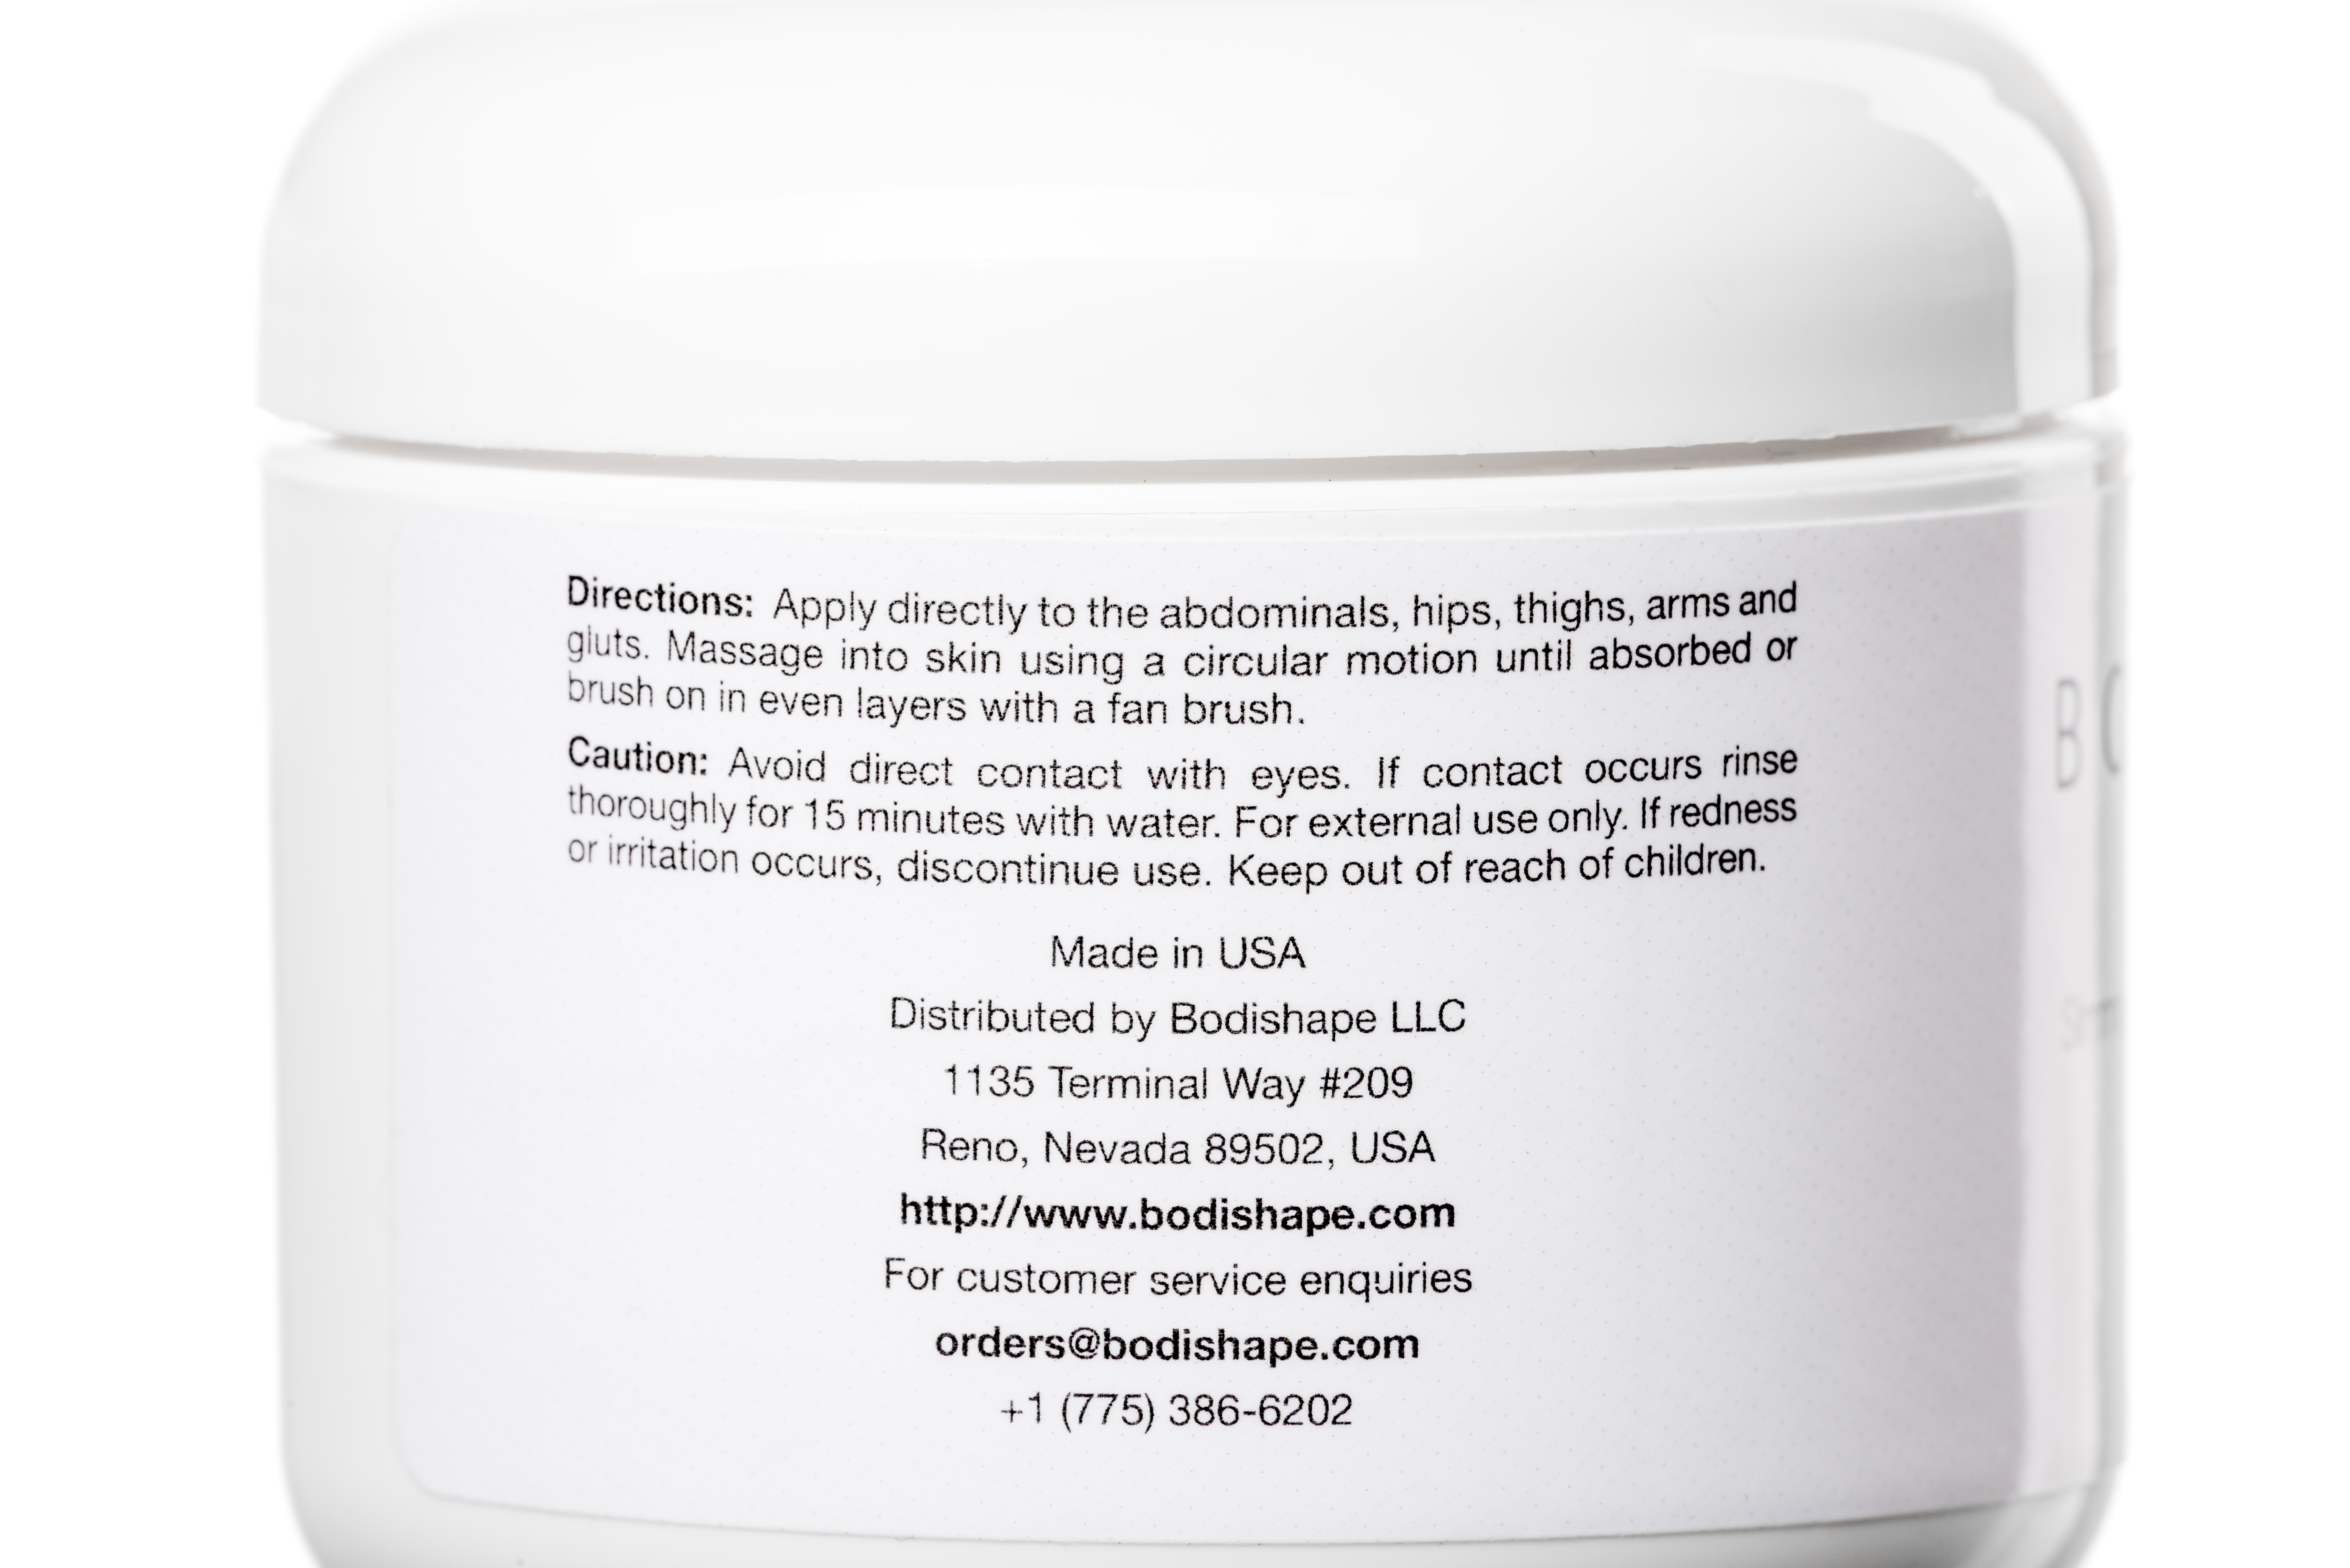 cellulite creme review